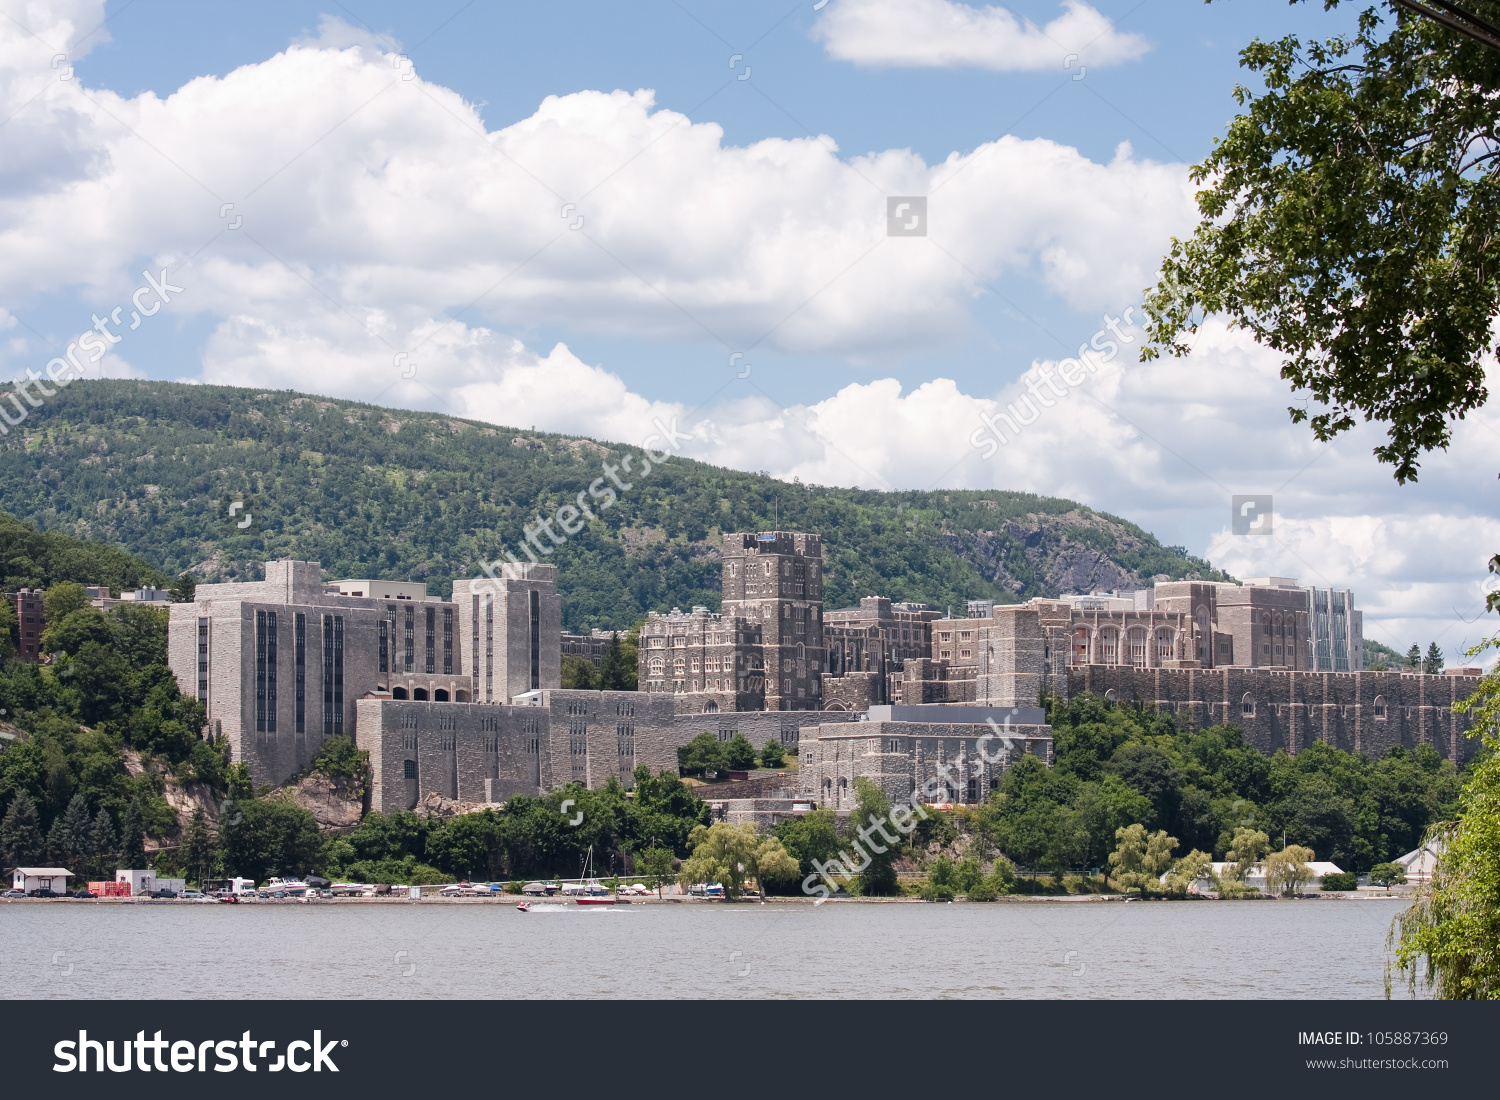 West Point Military Academy Taken Across Stock Photo 105887369.